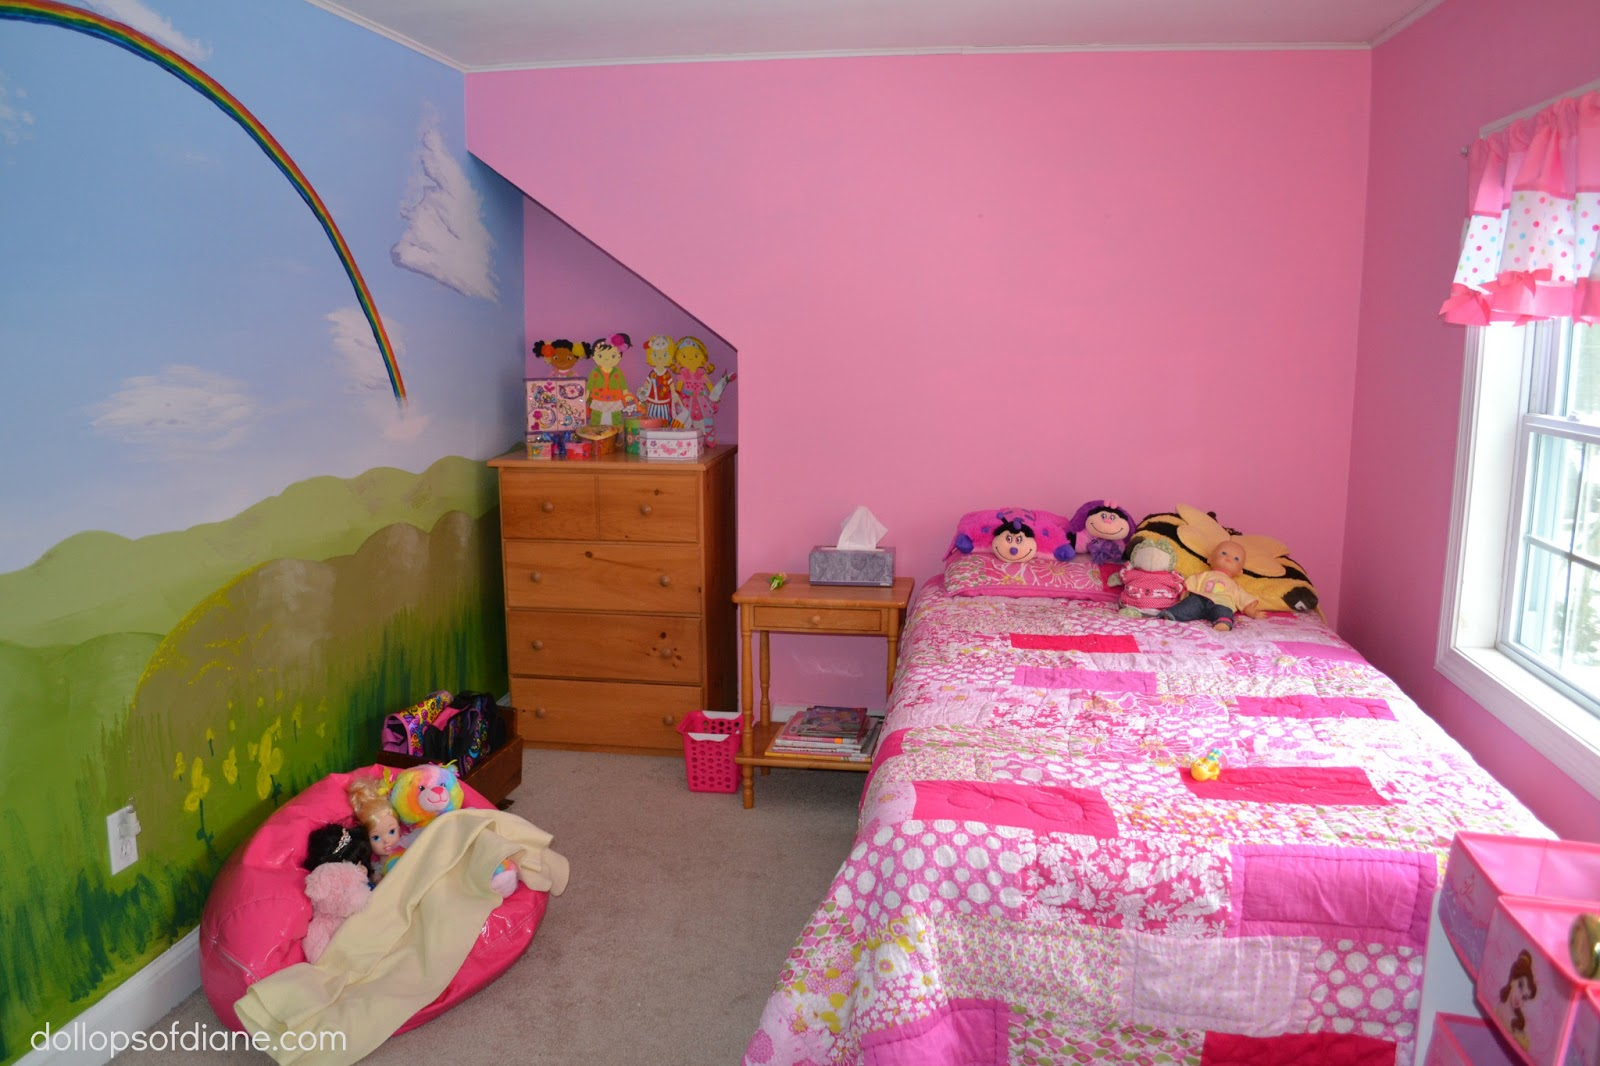 Dollops of diane the perfect room for a five year old girl 11 year old girls room